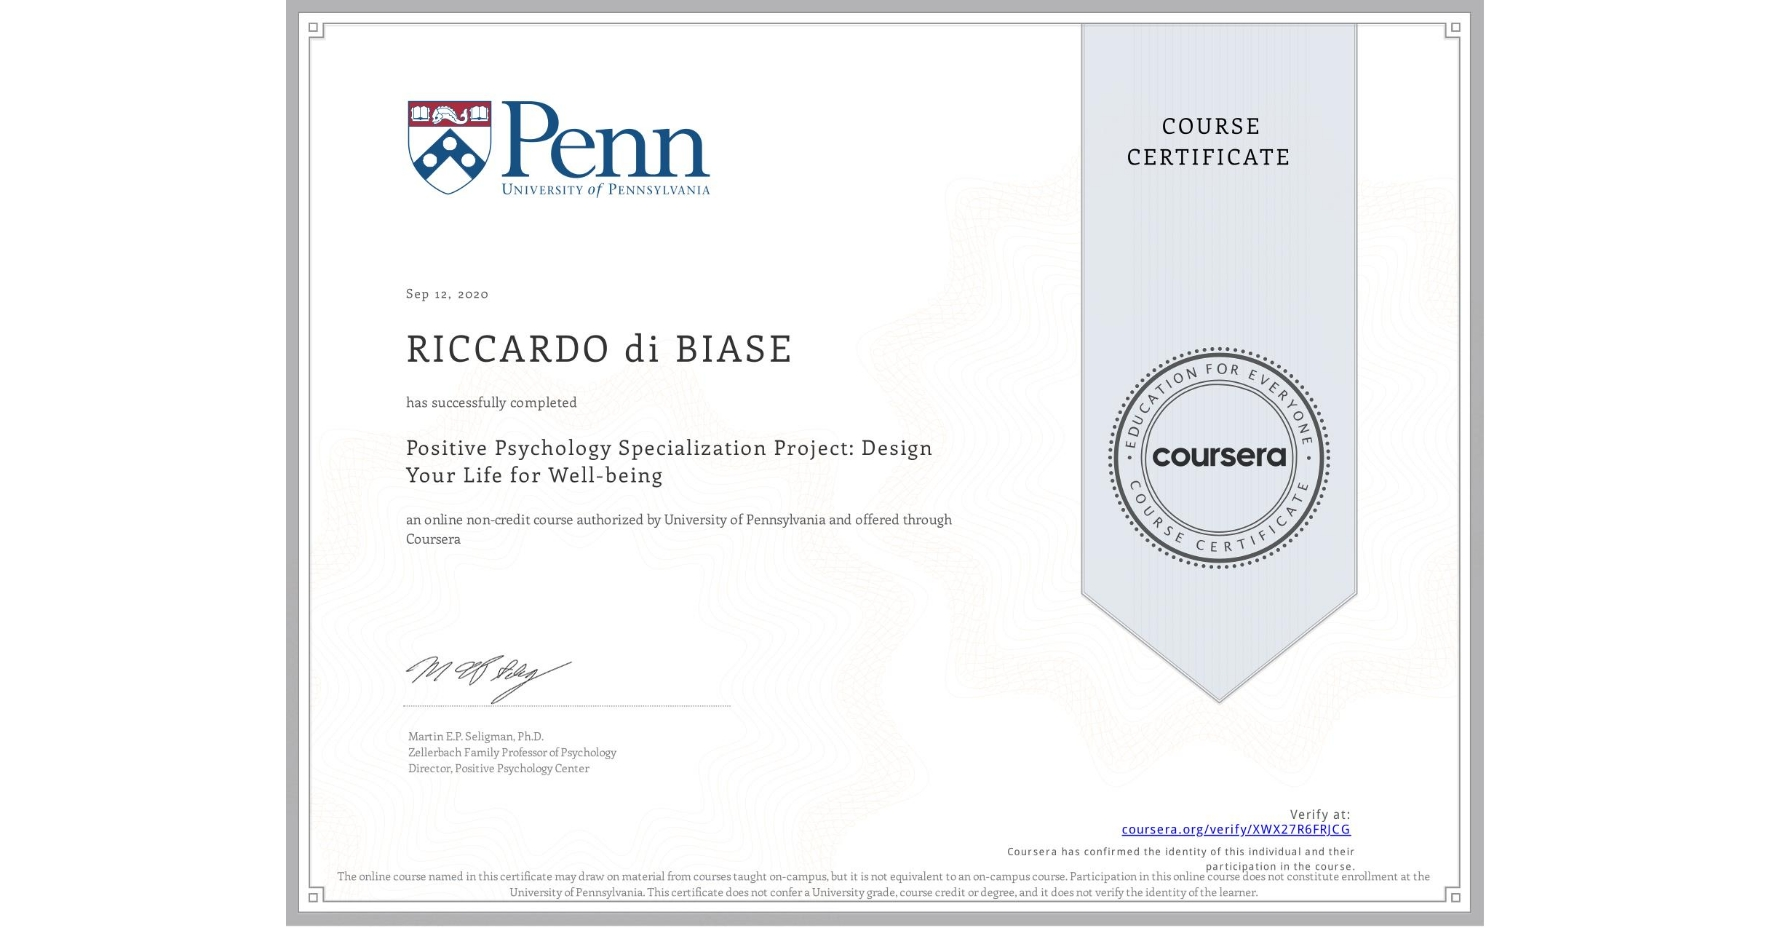 View certificate for Riccardo di Biase, Positive Psychology Specialization Project: Design Your Life for Well-being, an online non-credit course authorized by University of Pennsylvania and offered through Coursera